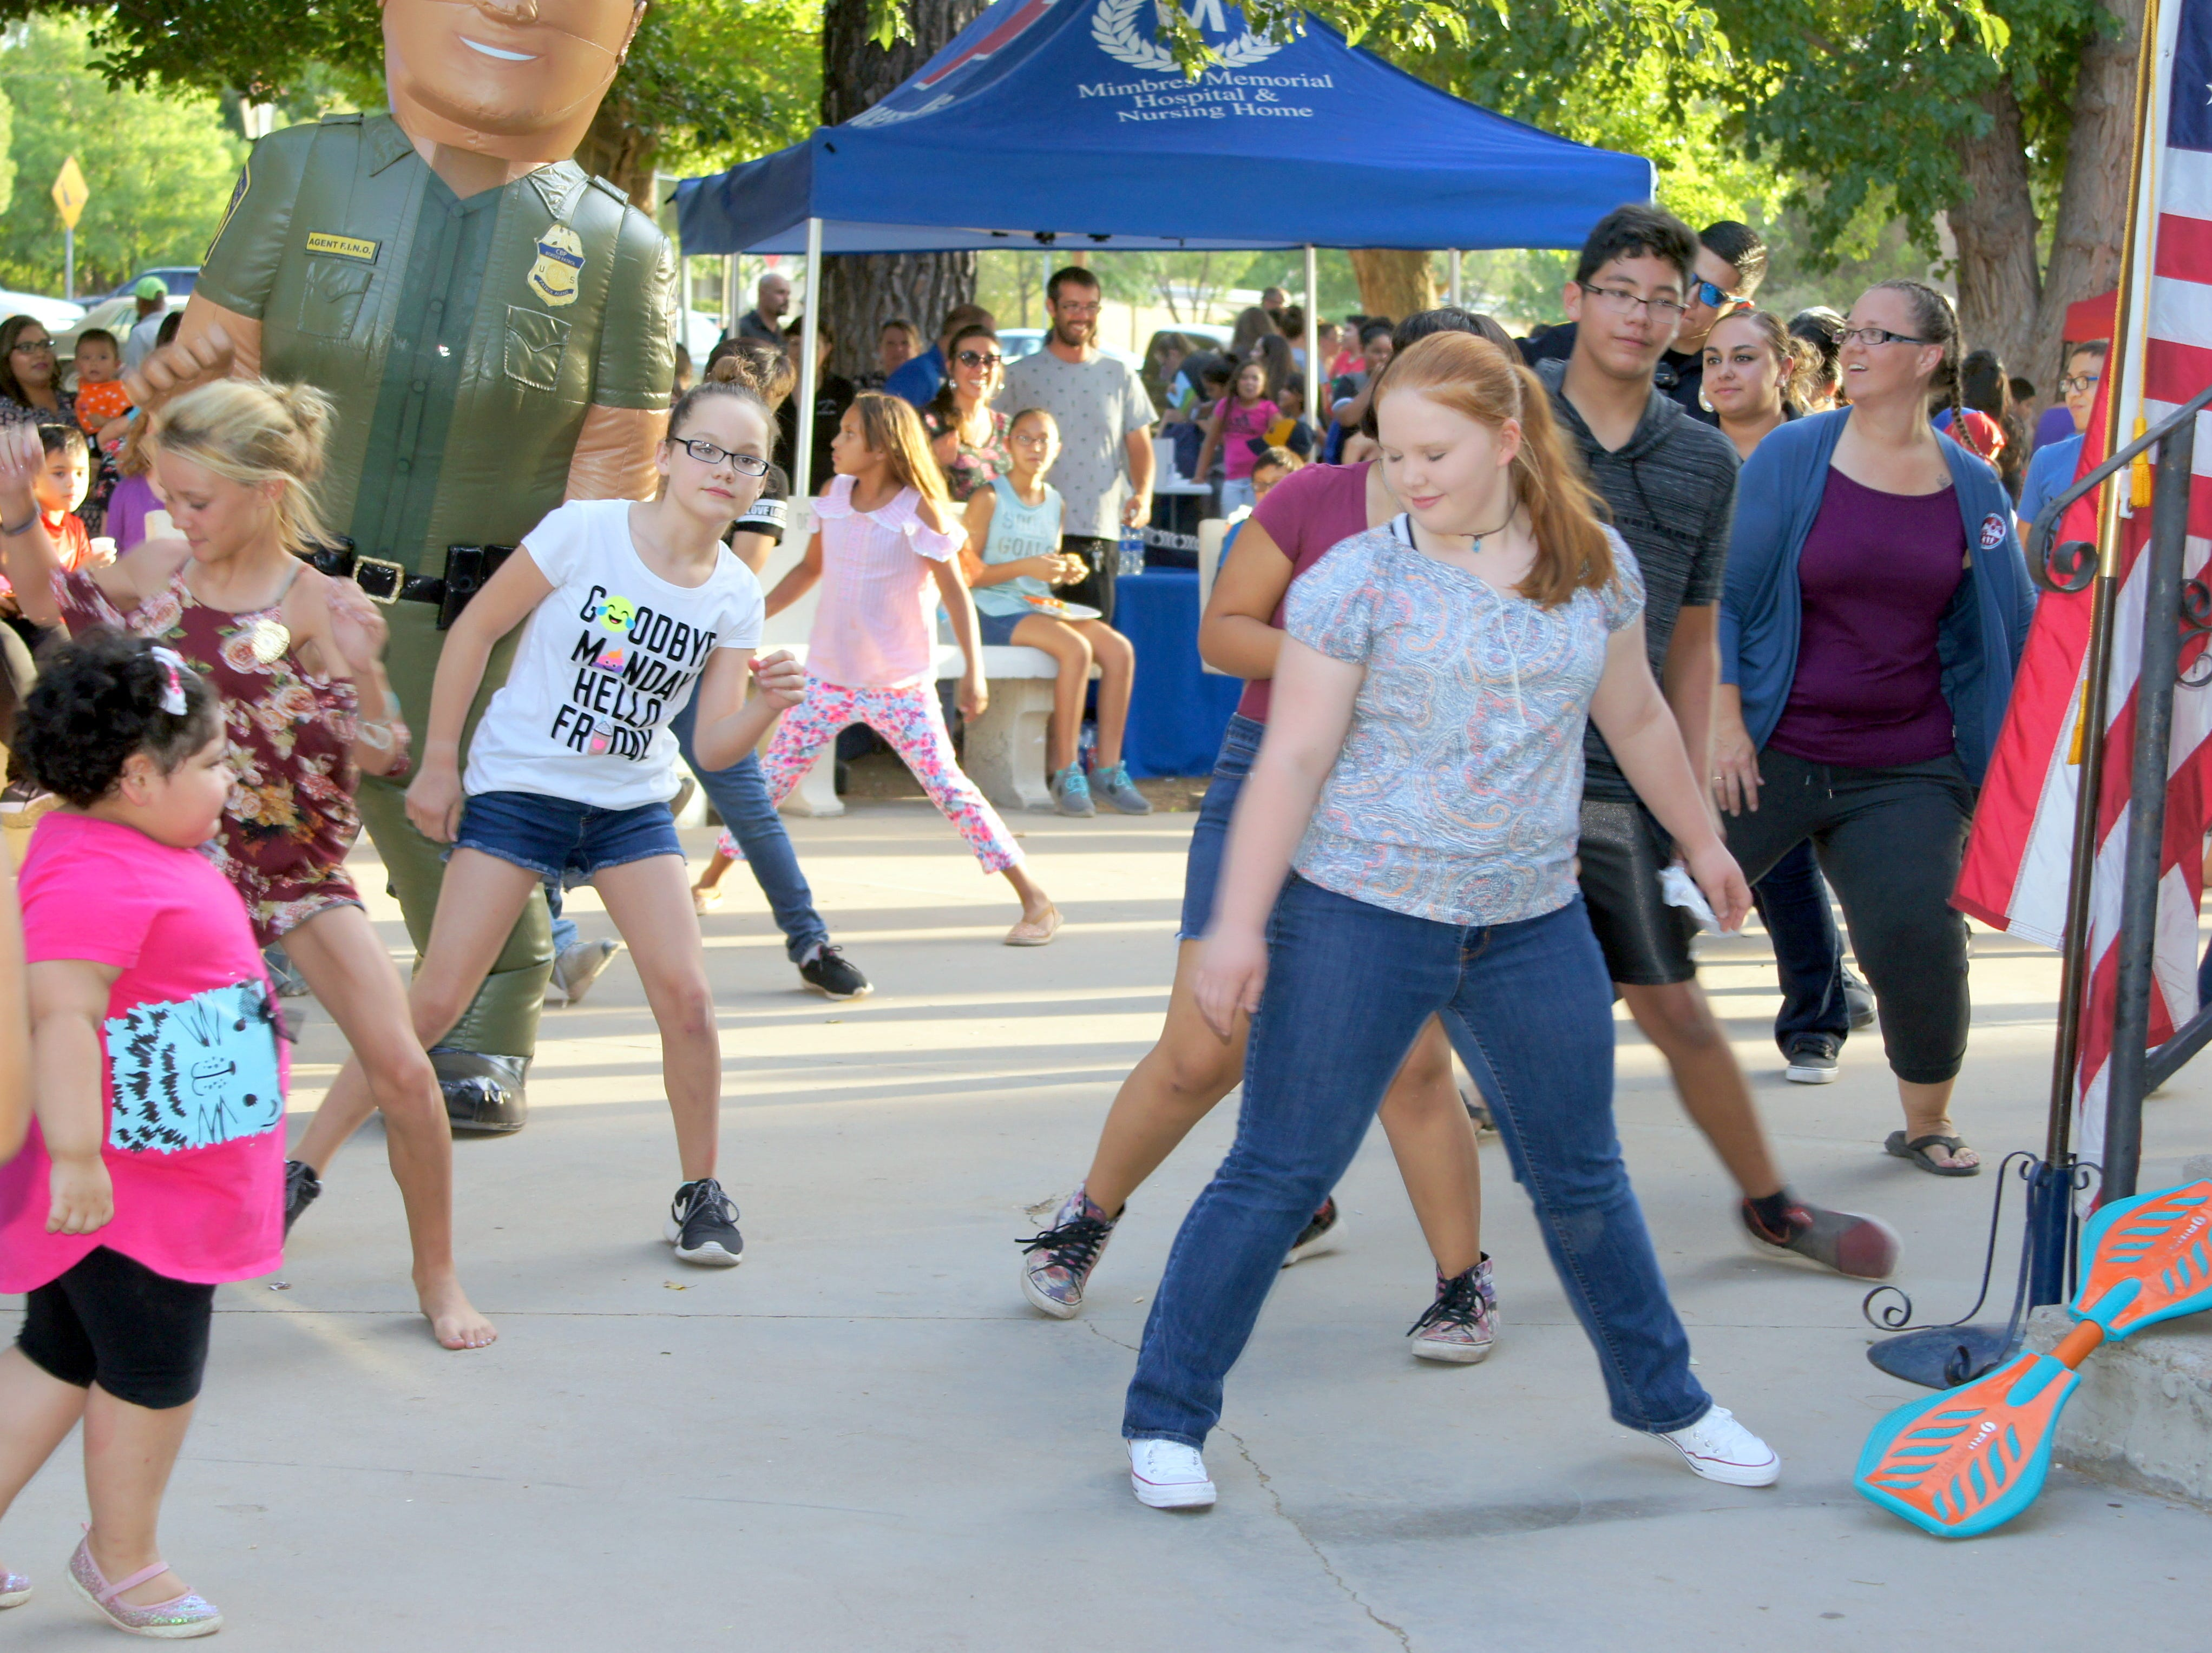 DJ Richard Gallosa and his Making Memories entertainment service kept children and adults active on the dance floor during Tuesday's second annual National Night Out event at Luna County Courthouse Park in Deming, NM.